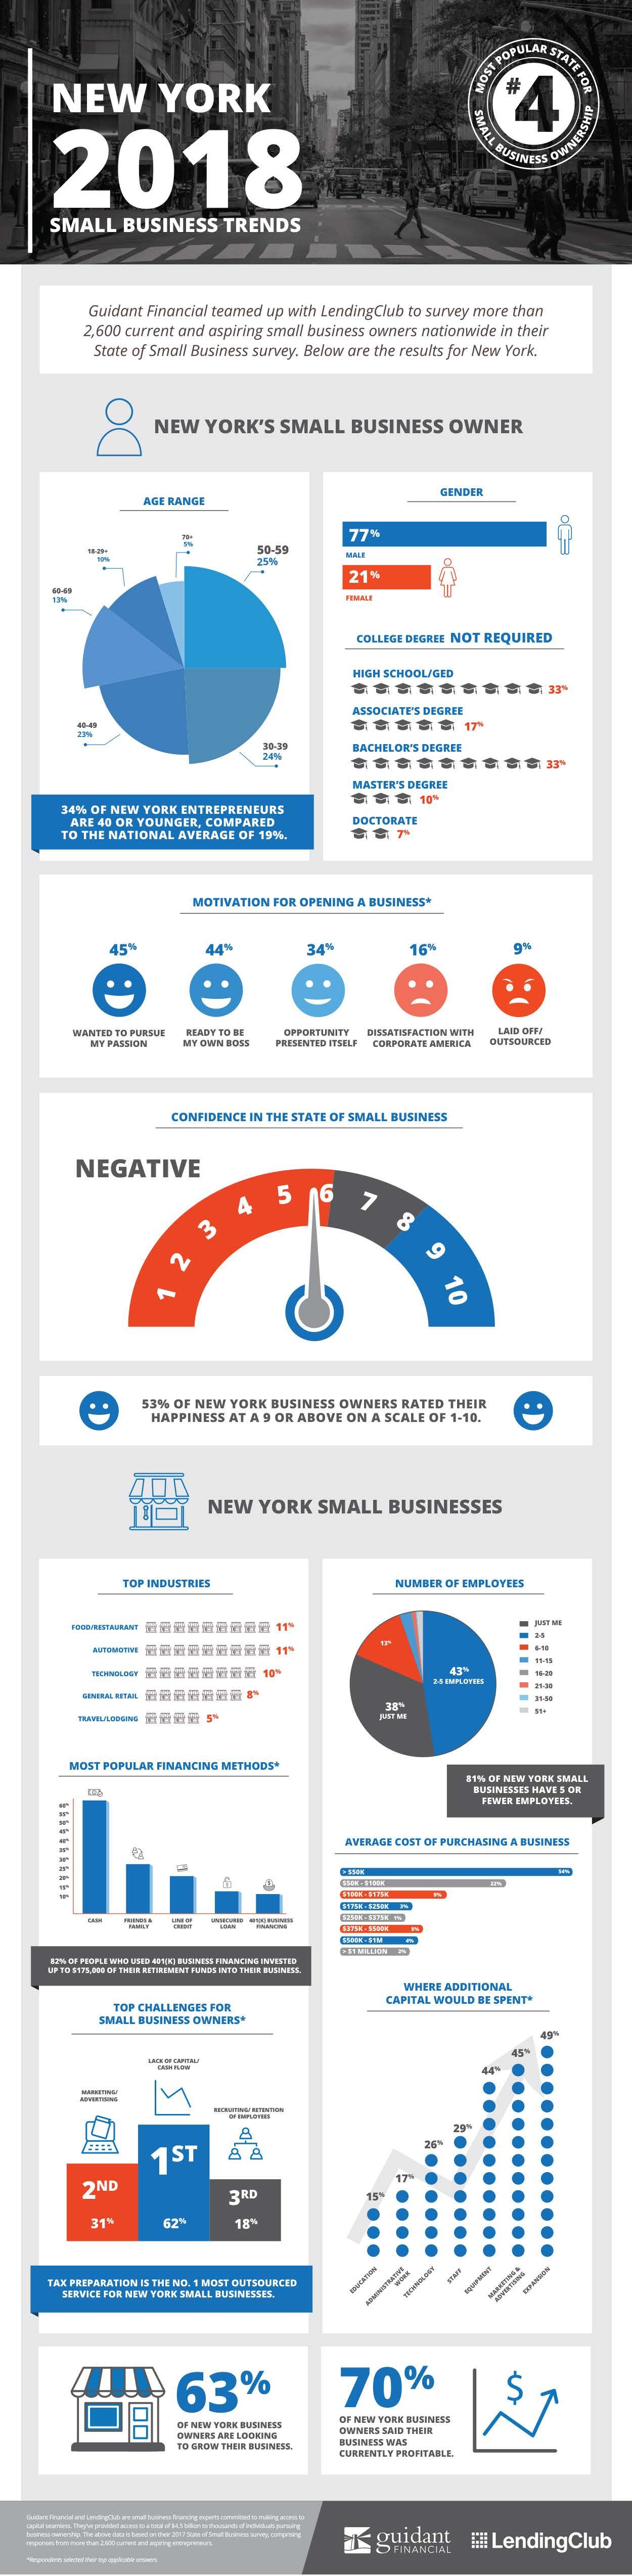 An informational Graphic about small business trends in the state of New York